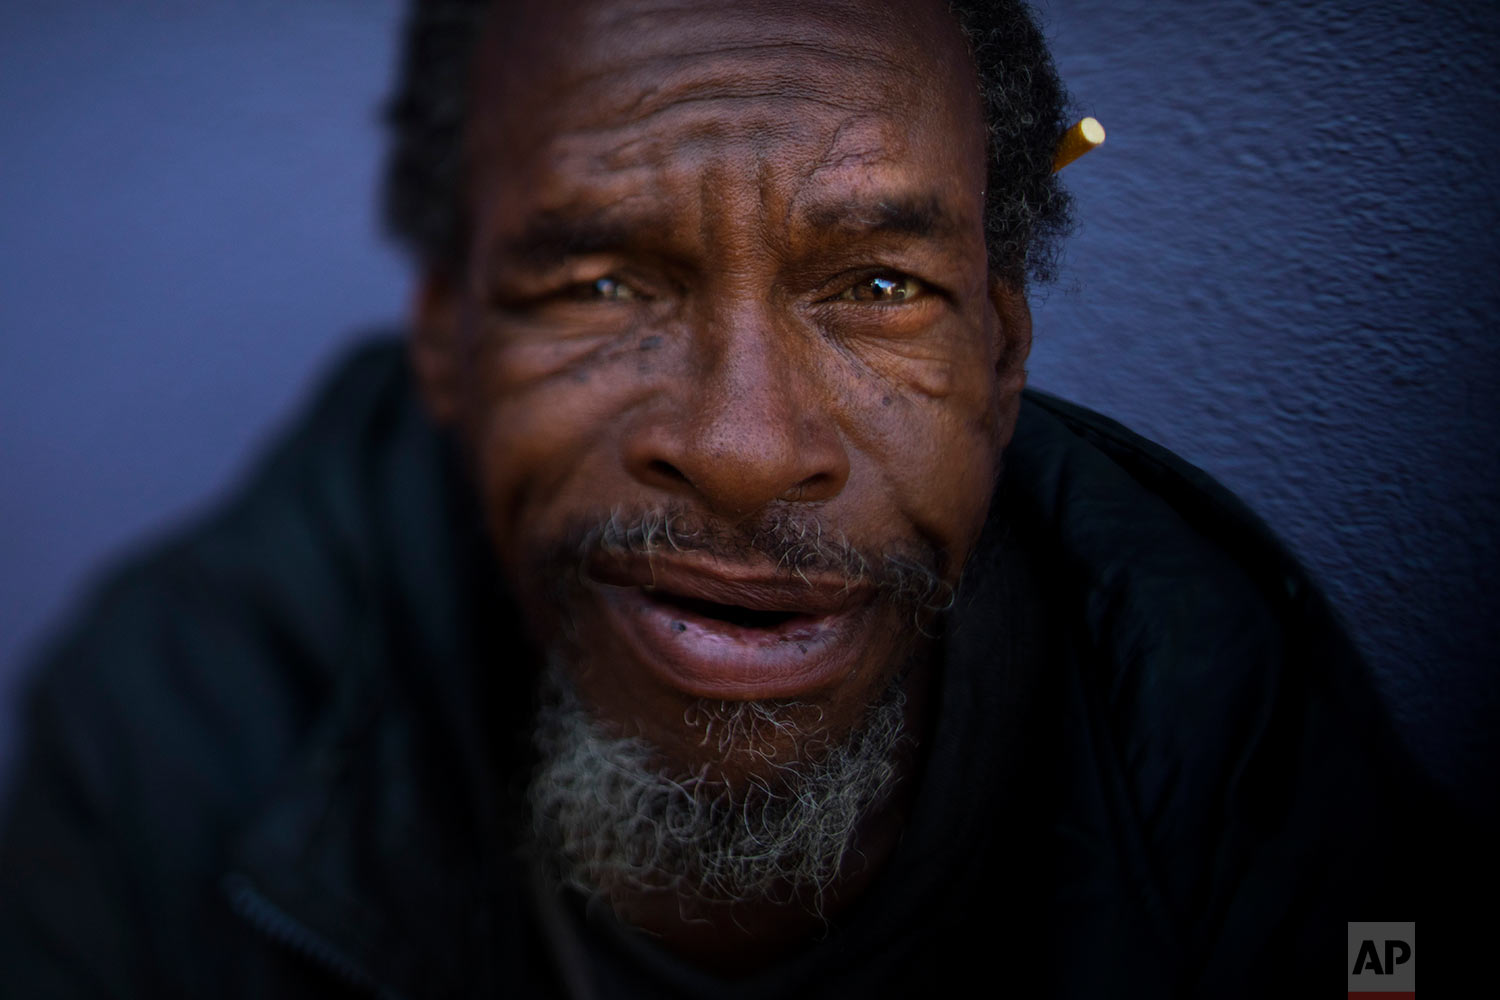 """Moi Williams, 59, Wednesday, Sept. 13, 2017, in Los Angeles. Williams, who has been homeless for four years, said he is comfortable sleeping on the street. """"I'm not bothering nobody. I'm not being bothered."""" The homeless are easy to pass by on the street. It's harder when you look into their eyes. Their gazes hint at lost promise or a glimmer of hope. Some are sad, some placid, others haunting. Behind each person is a story that however vague offers some glimpse into their lives. (AP Photo/Jae C. Hong)"""